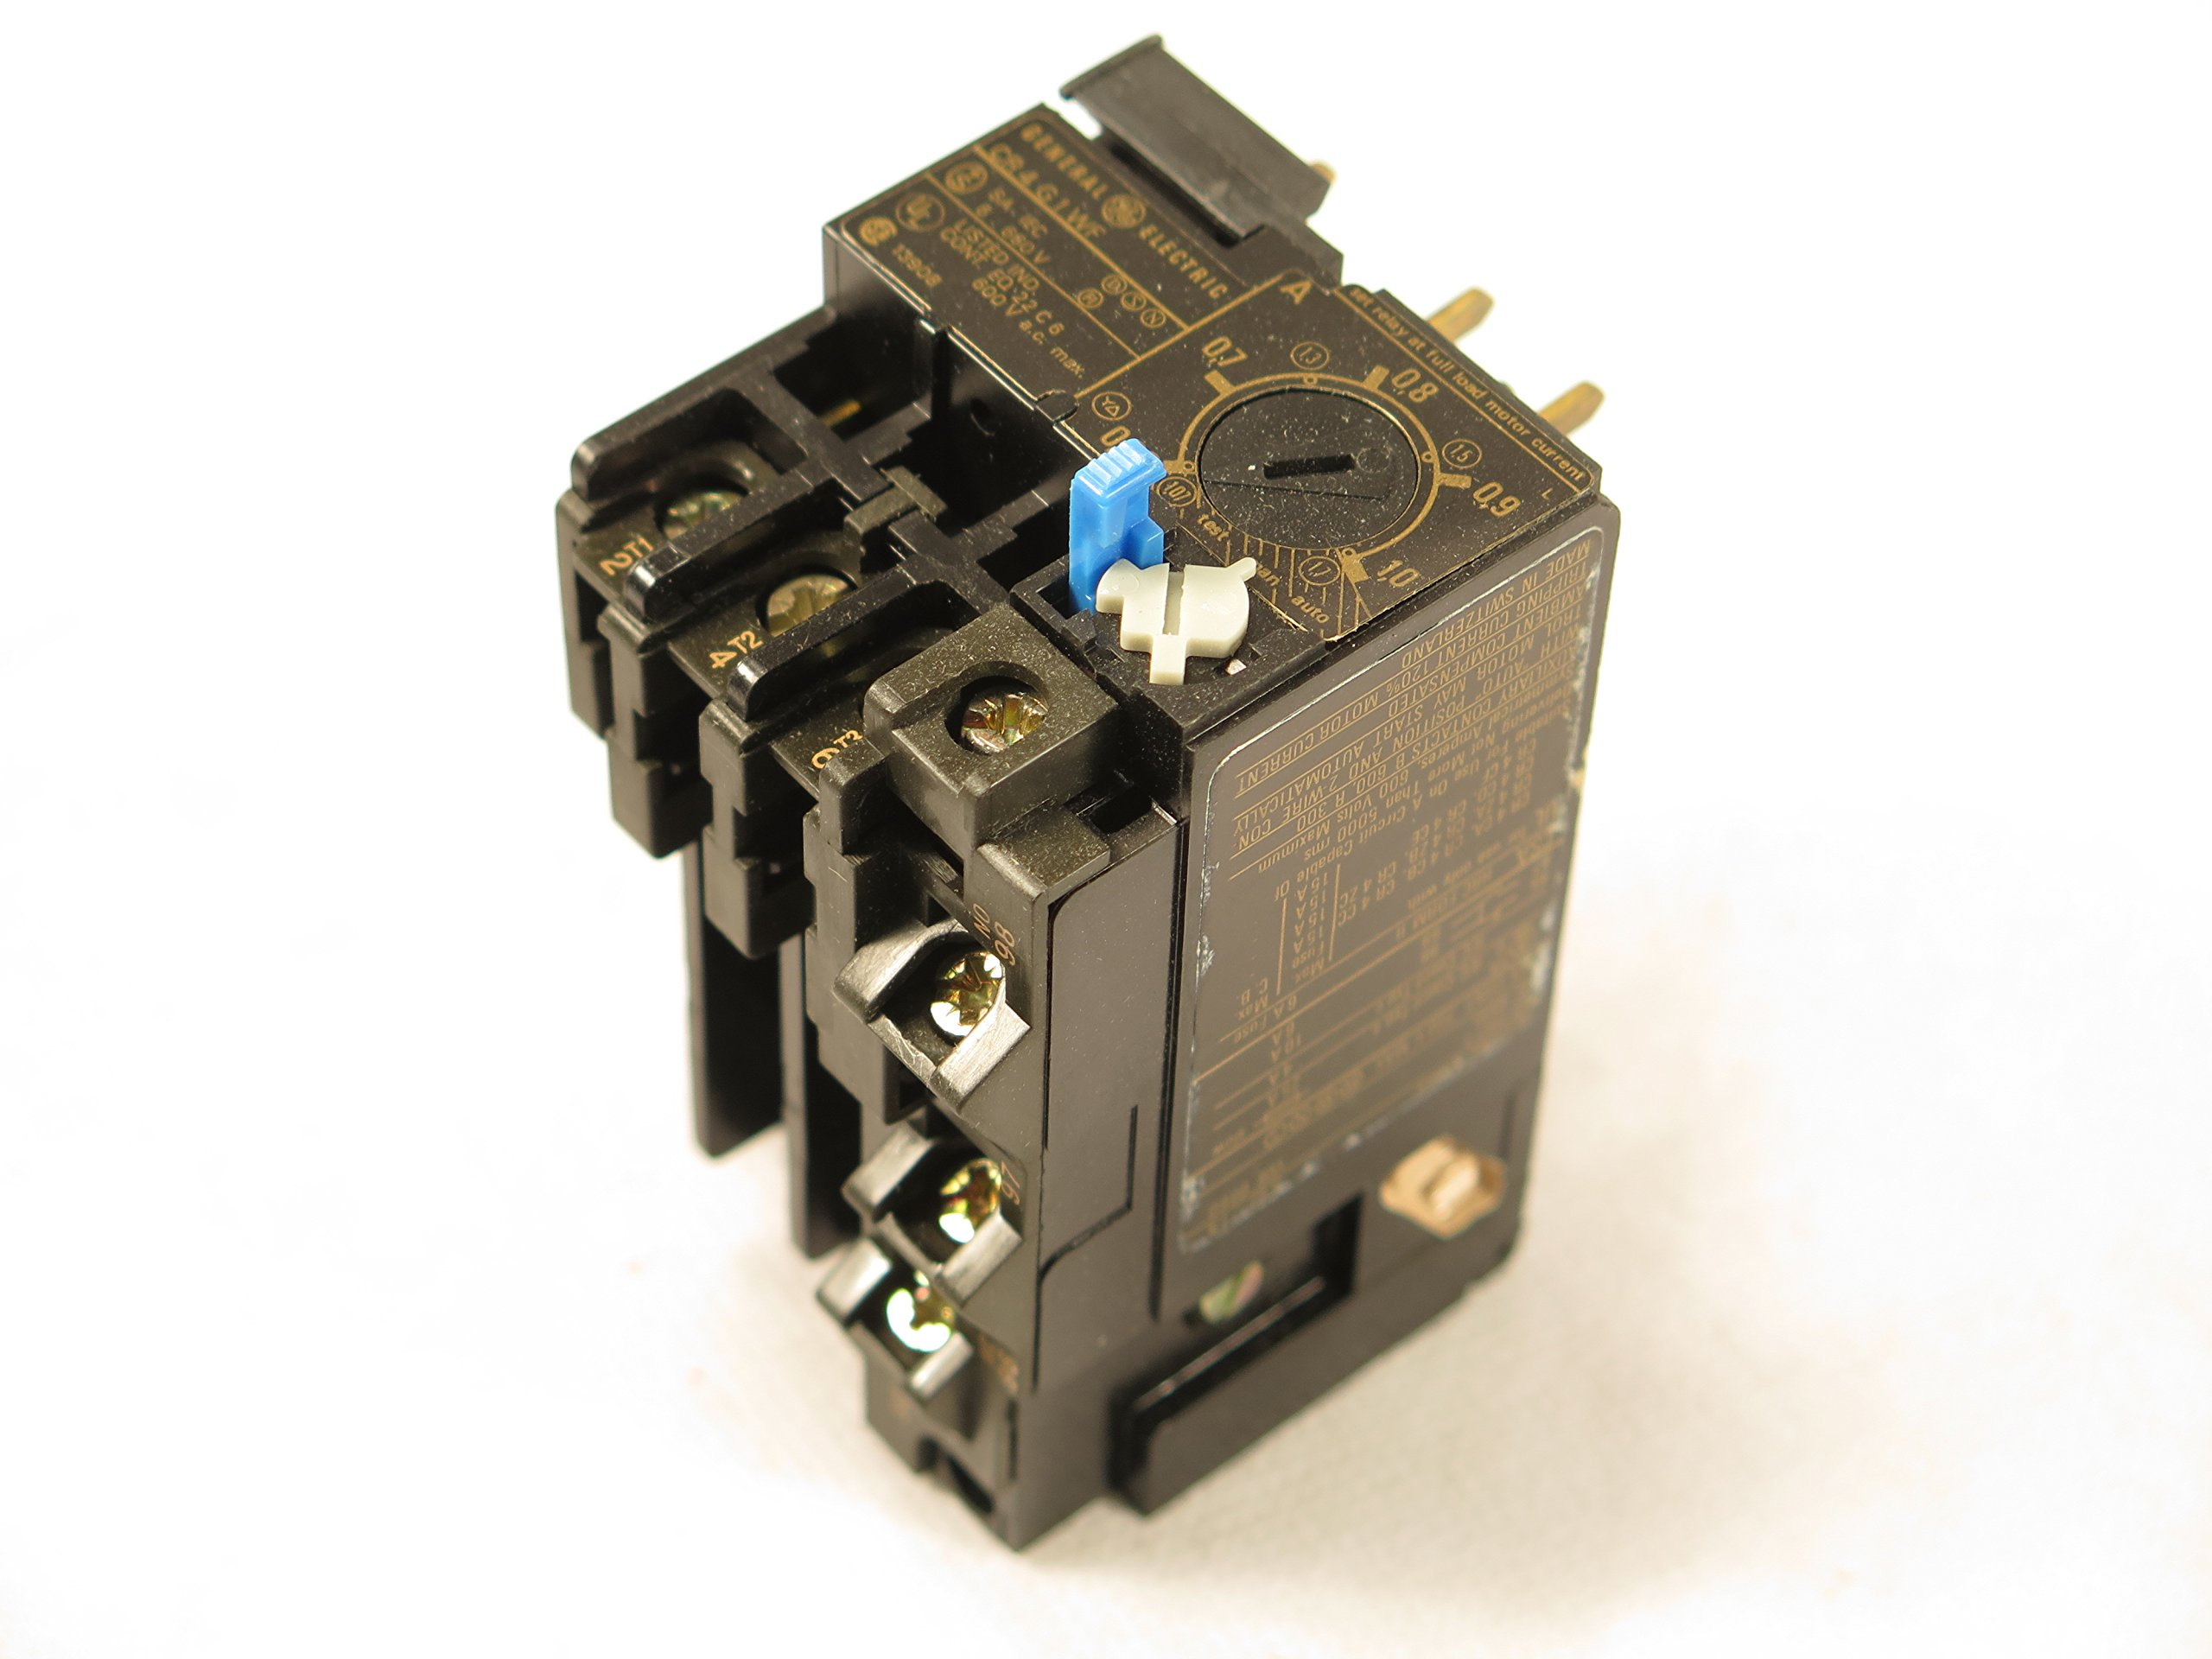 GE CR4G1WF THERMAL OVERLOAD RELAY DIRECT MOUNTING TO CONTACTOR 0.62-1.0A FITS SPRECHER SCHUH CT3-1.0